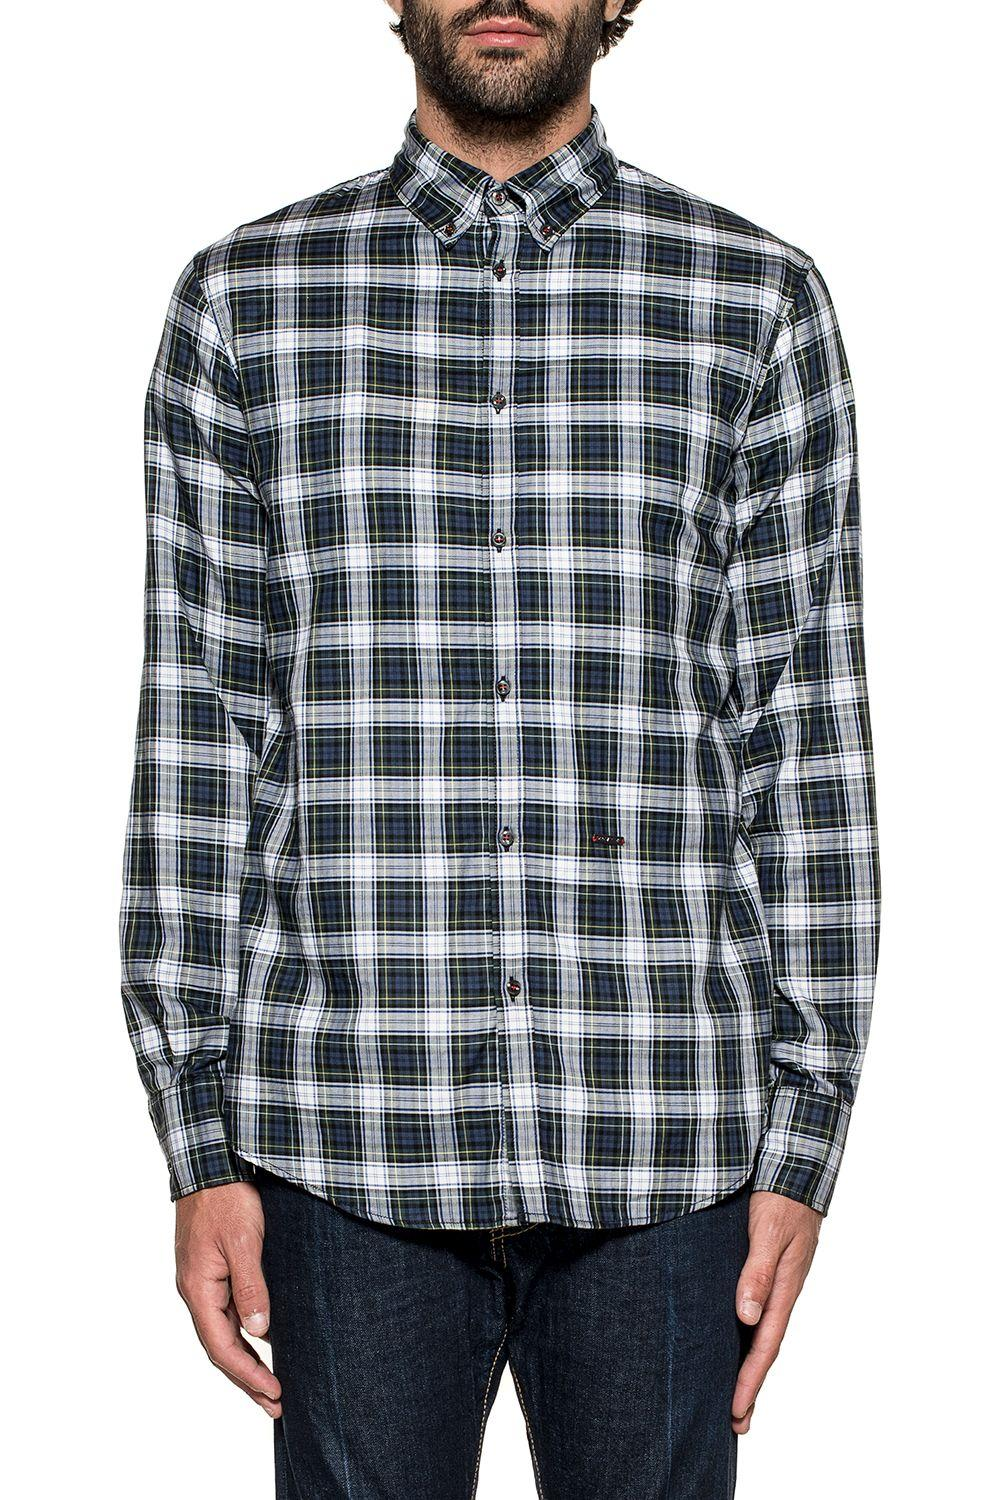 Dsquared2 Blue-white Checked Shirt In Blue - White